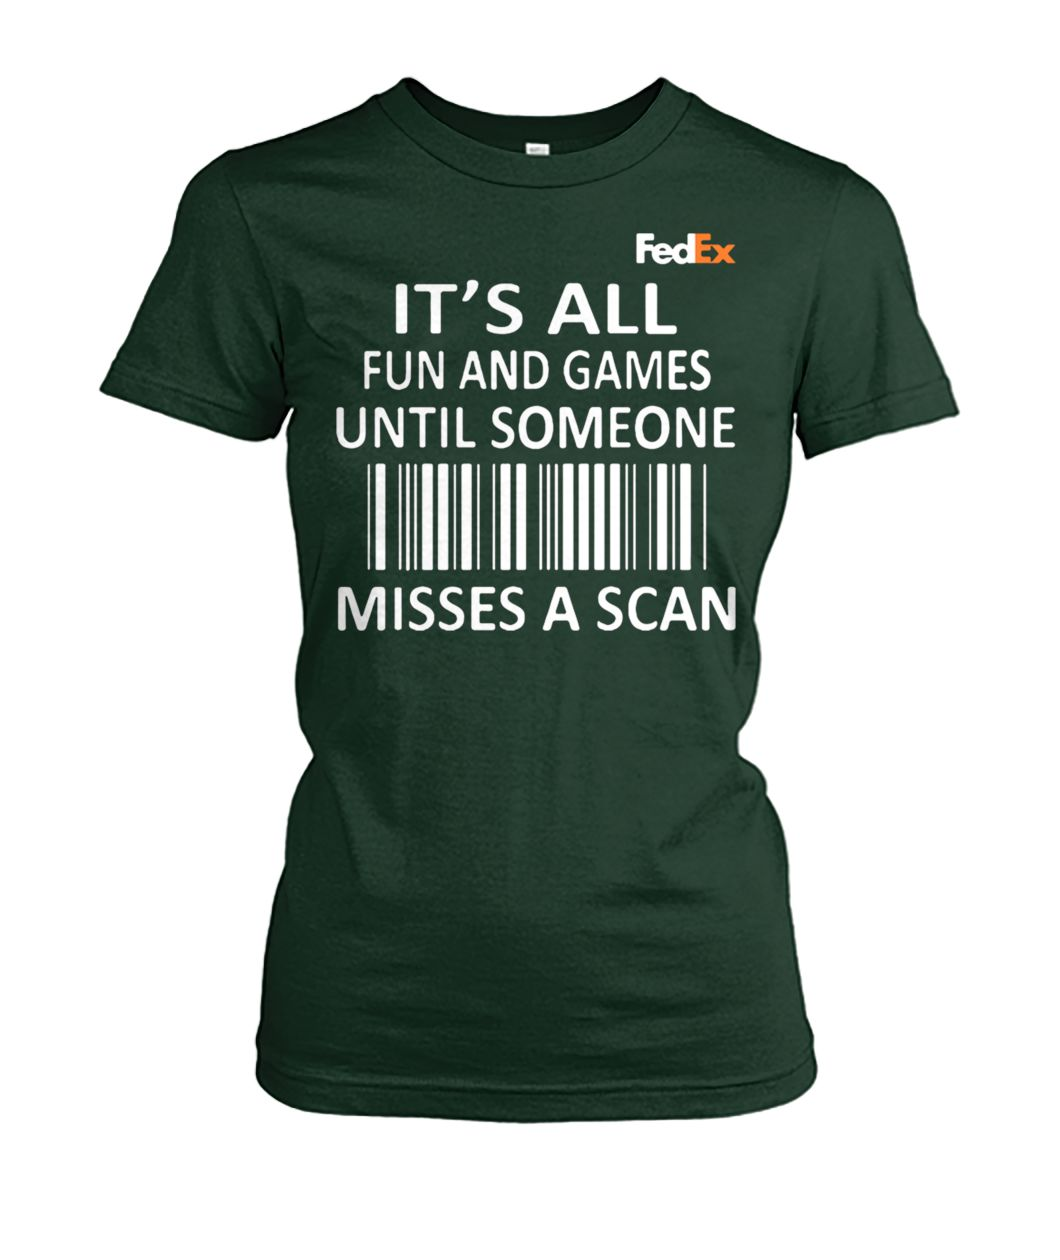 FedEx it's all fun and games until someone misses a scan women's crew tee